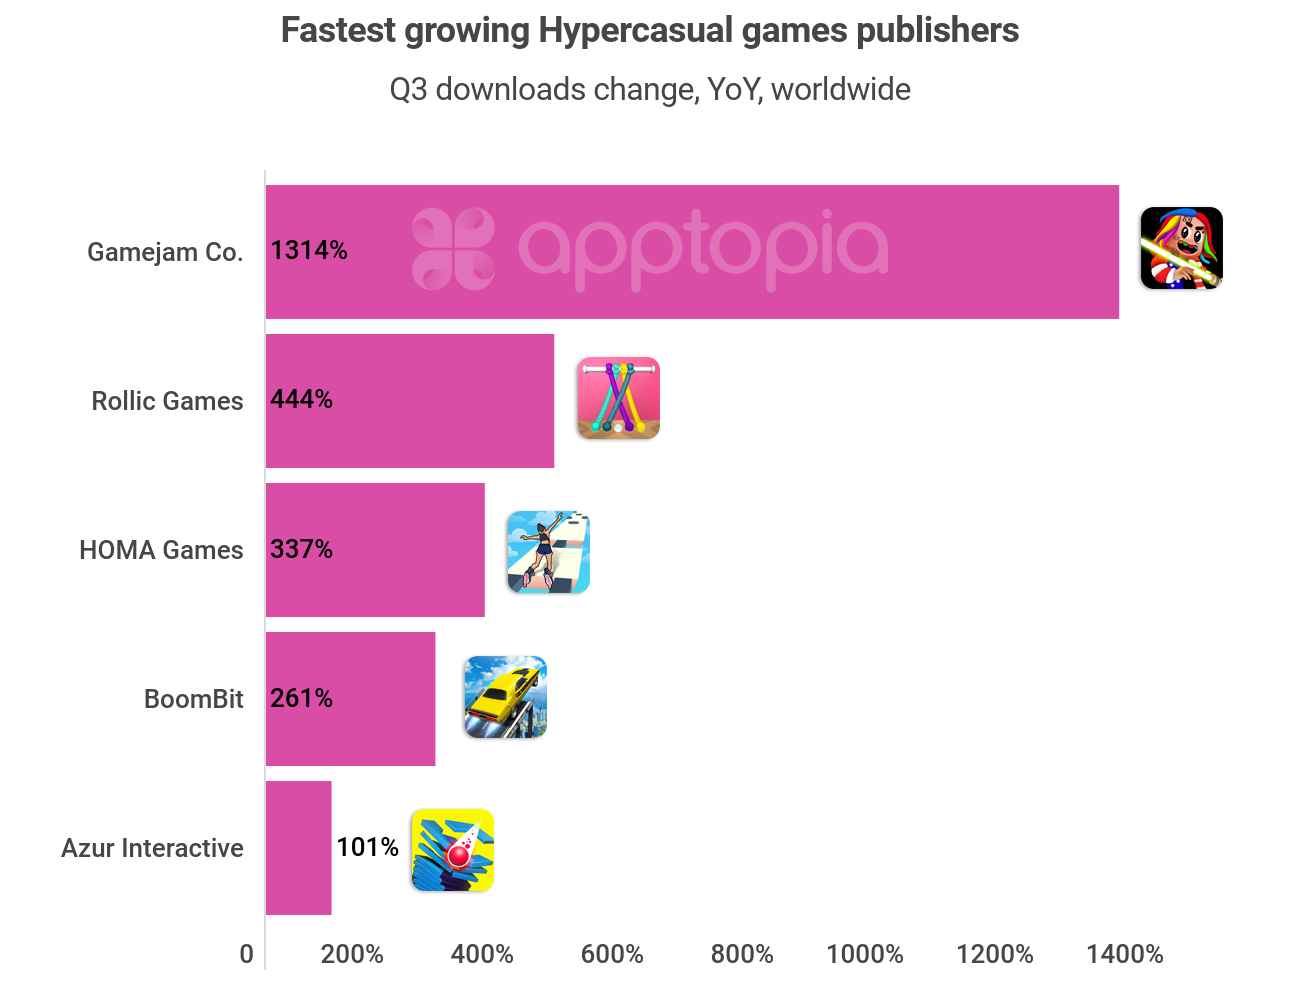 Top Hyper Casual Game Publishers - Growth by Apptopia